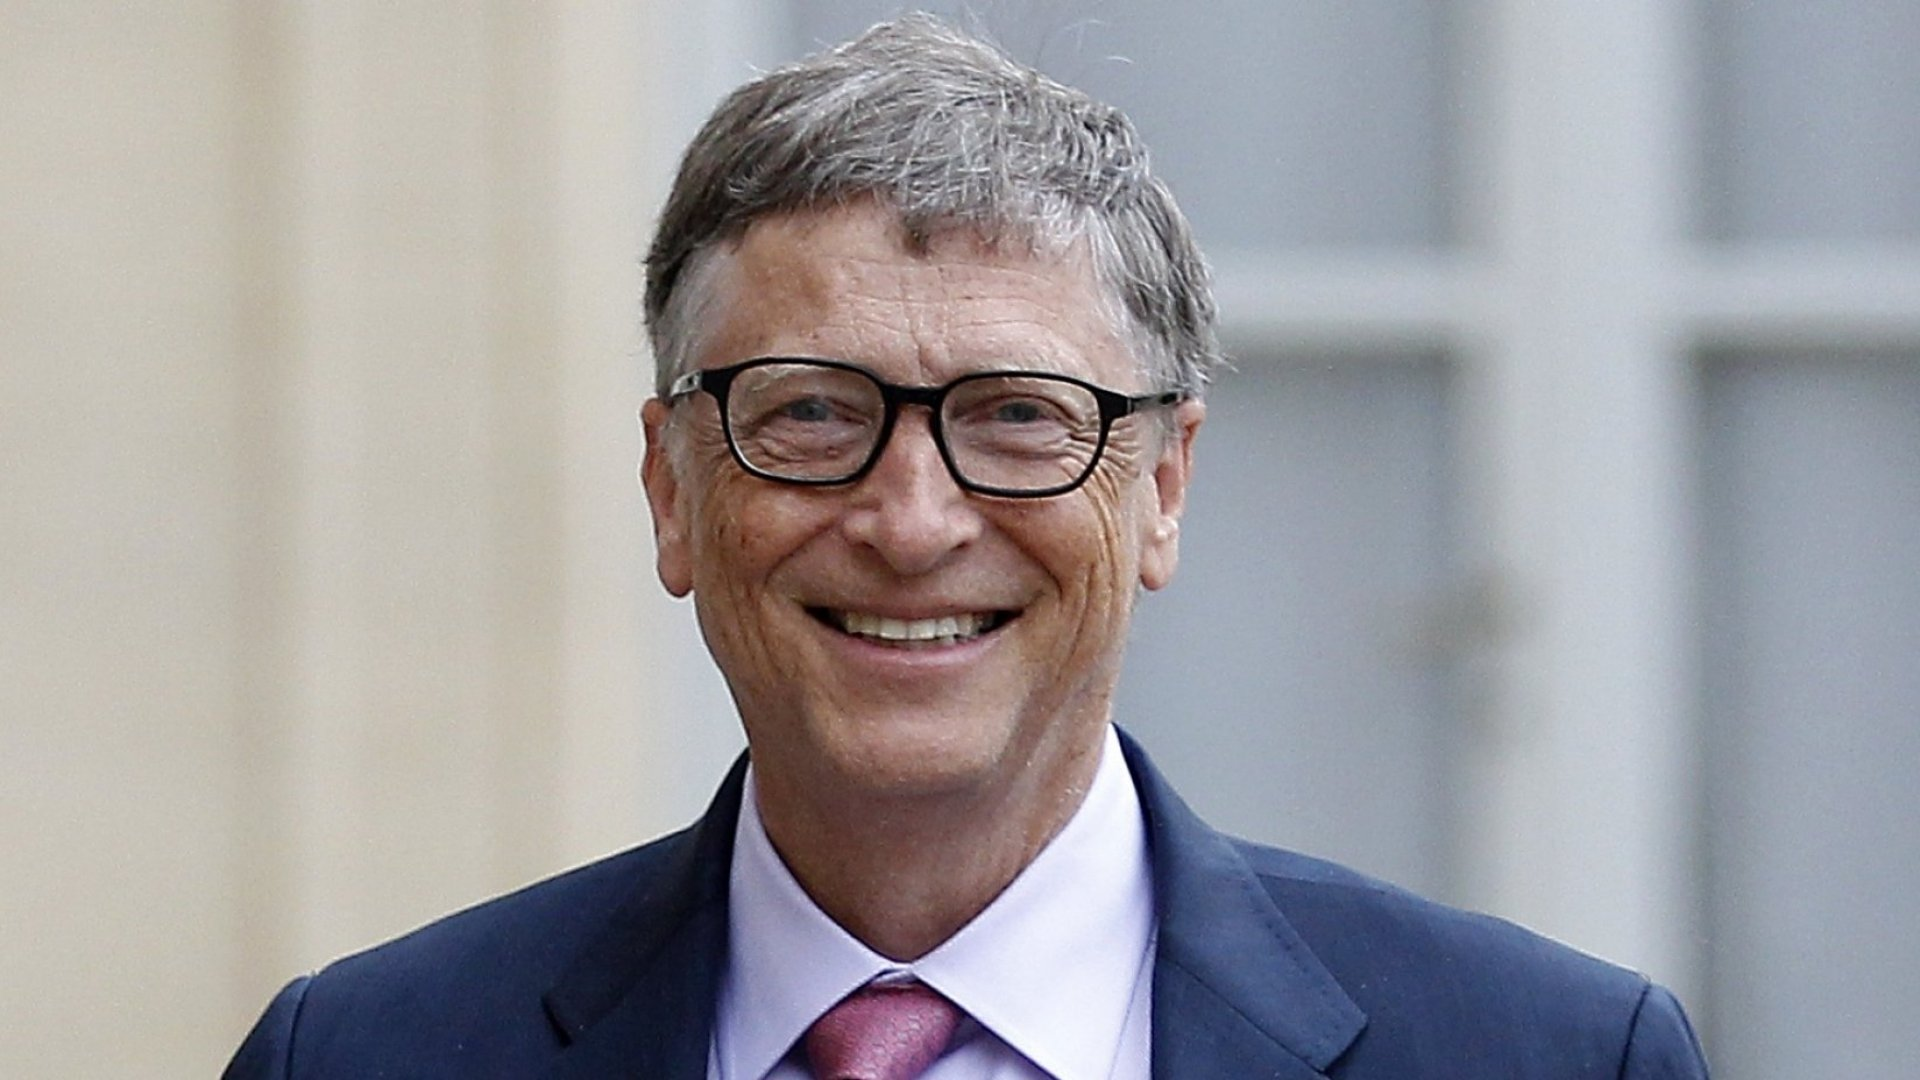 Bill Gates, the co-Founder of the Microsoft company and co-Founder of the Bill and Melinda Gates Foundation